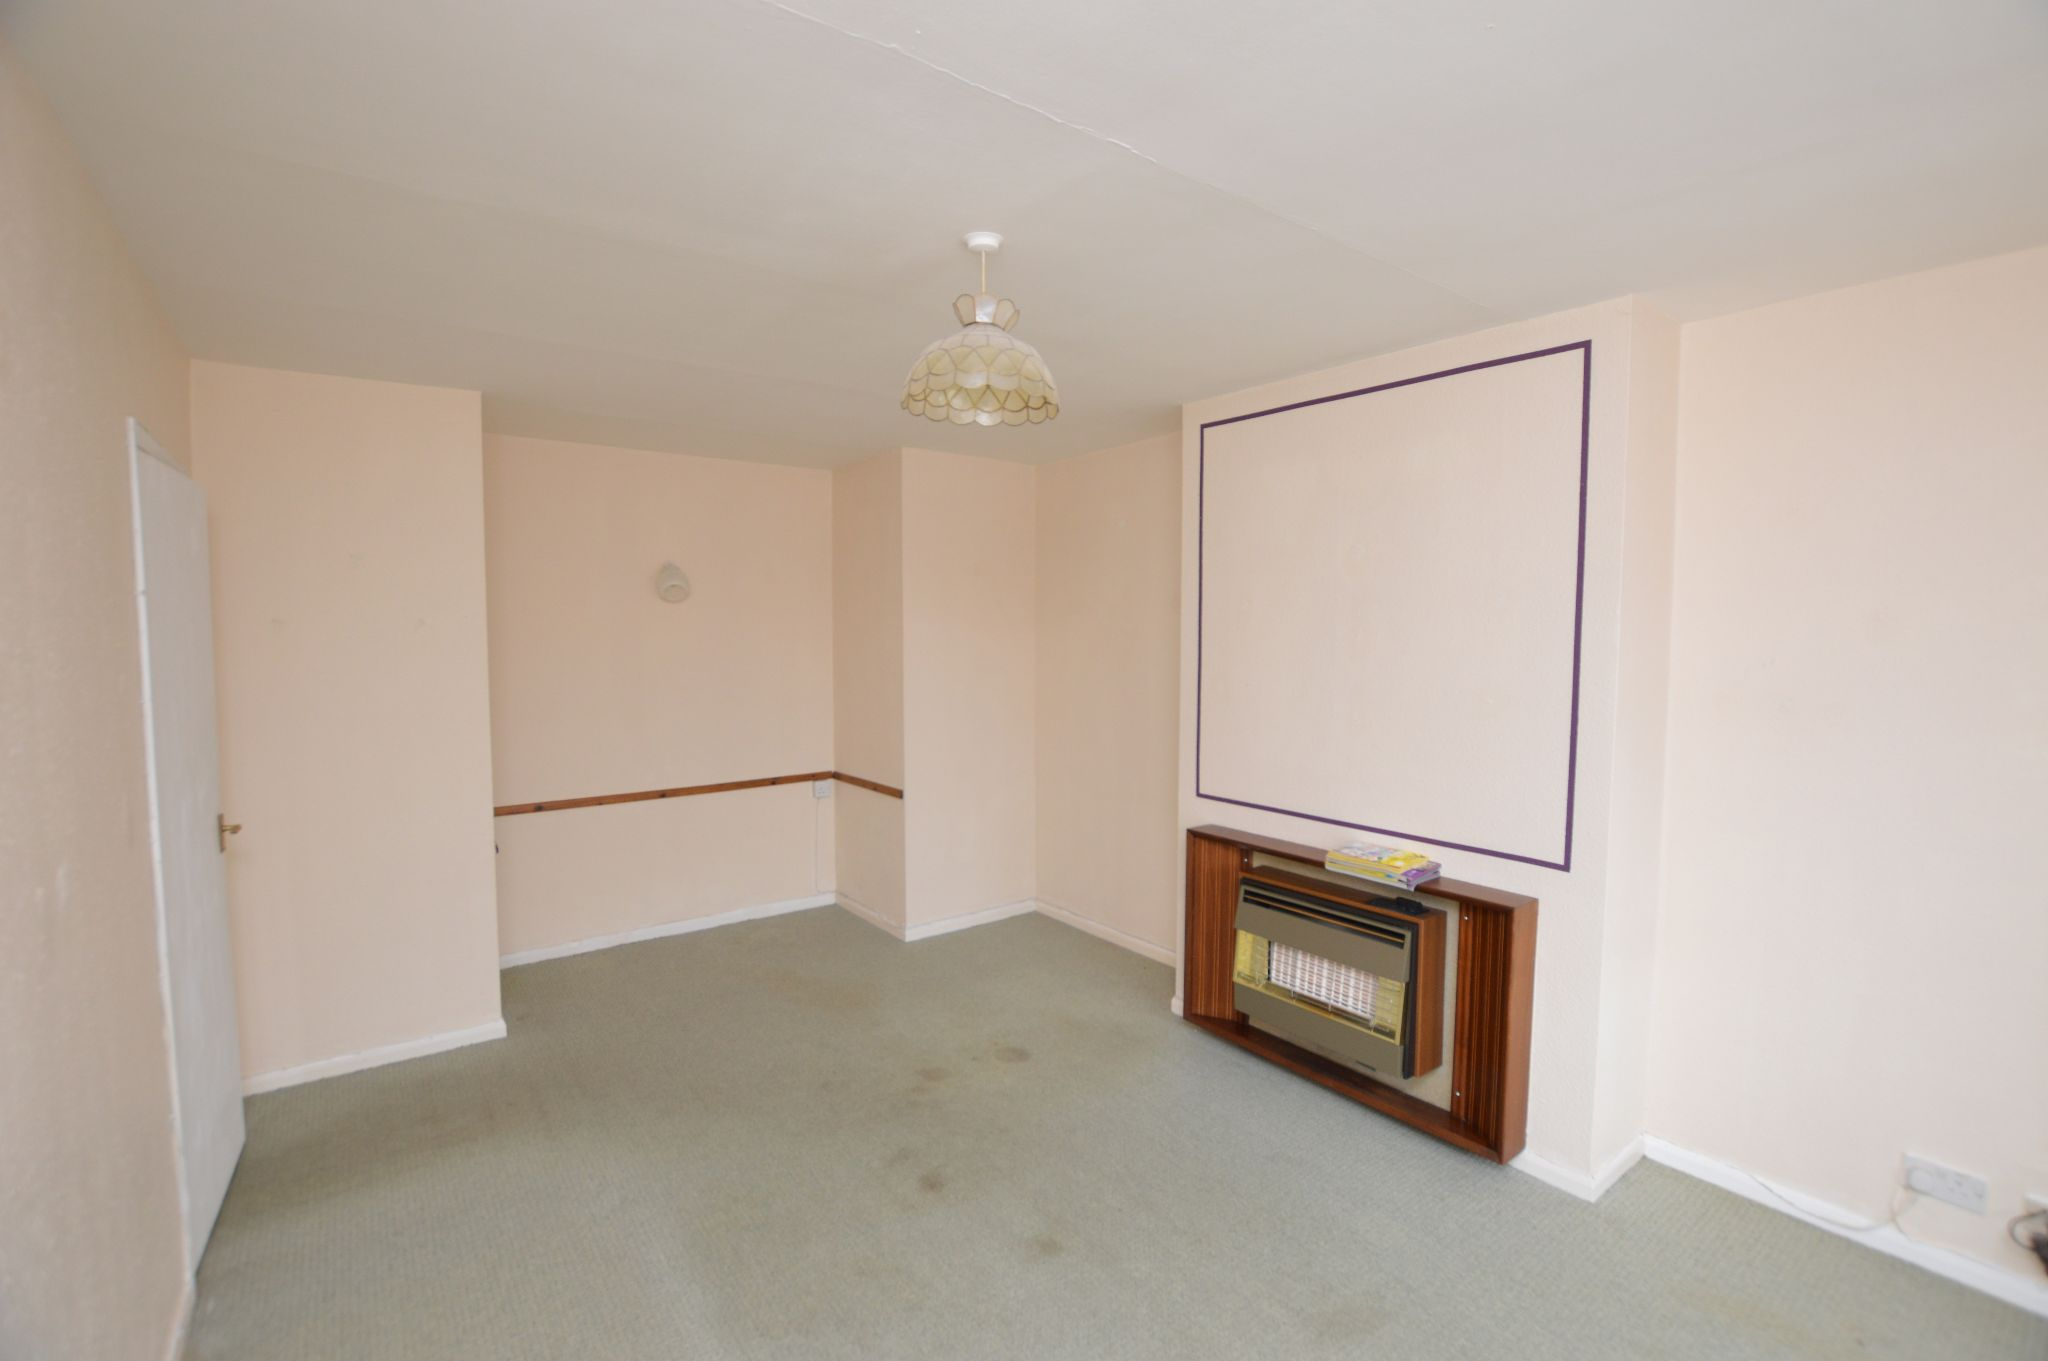 2 bedroom semi-detached bungalow For Sale in Abergele - Lounge View 2